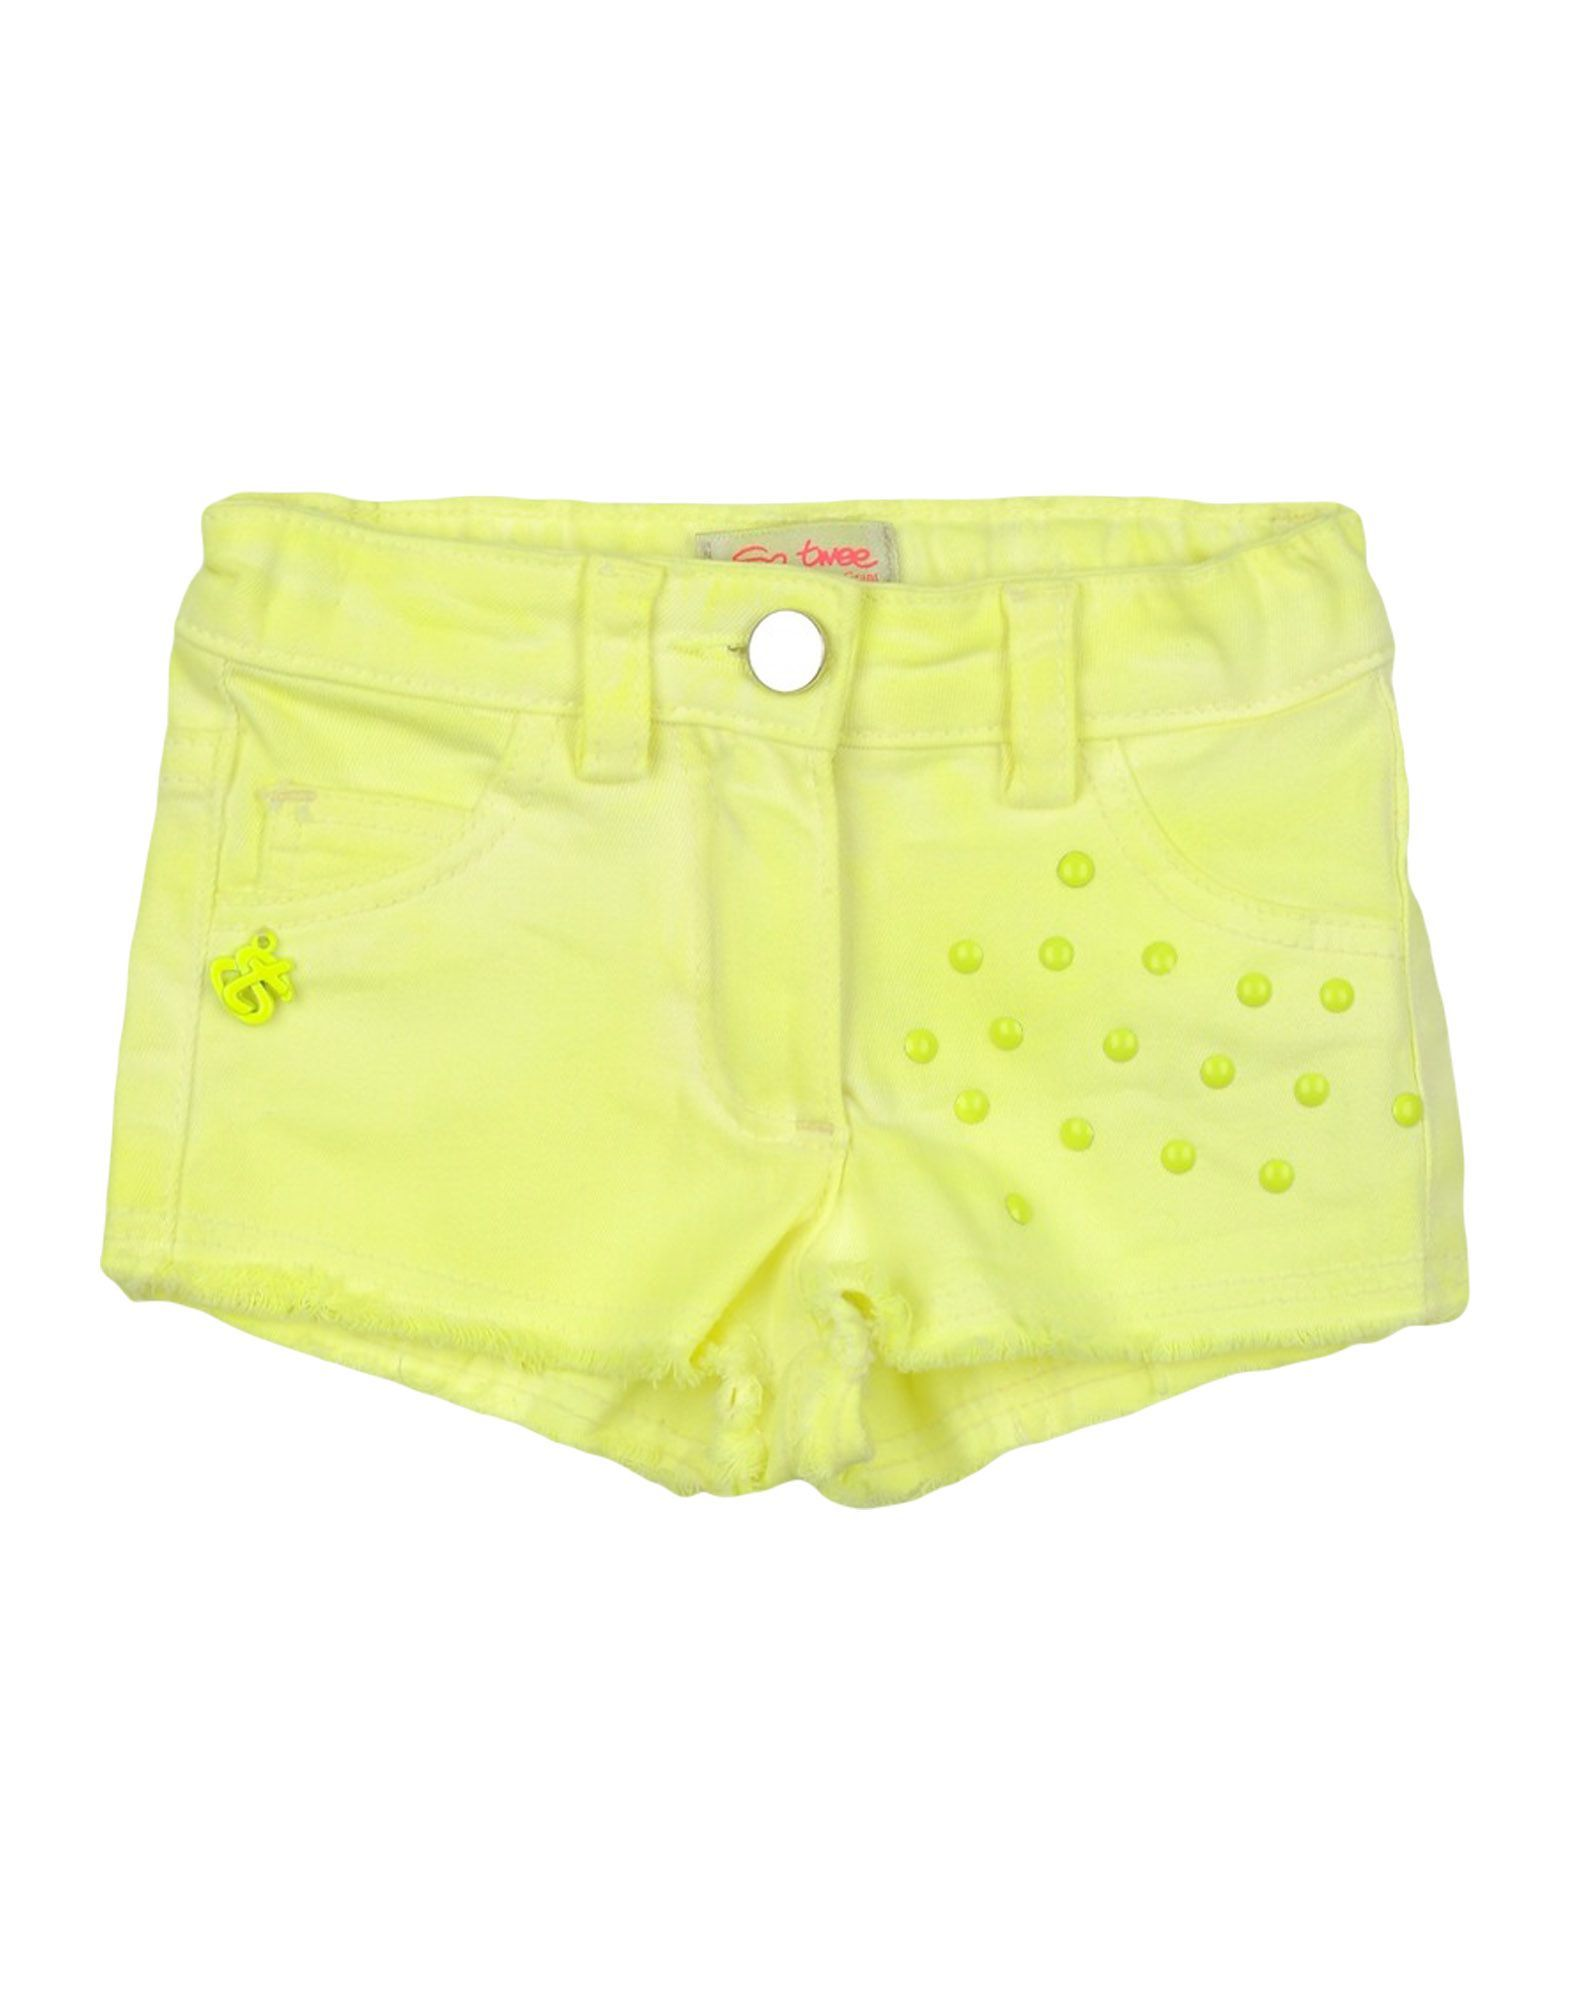 TROUSERS Girl So Twee By Miss Grant Yellow Cotton